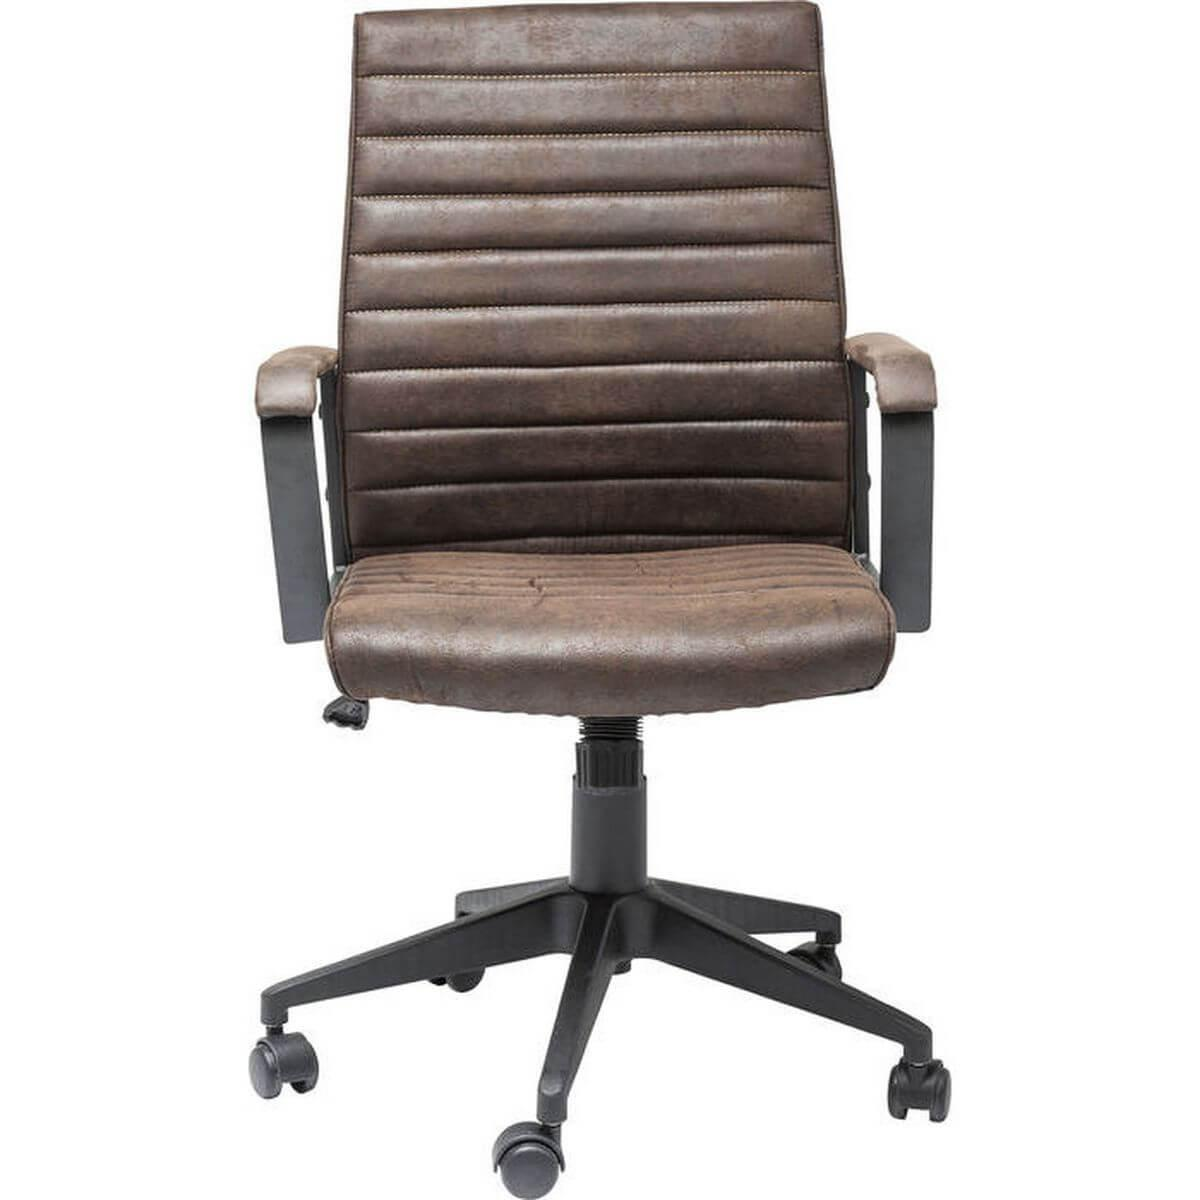 Office Chair Labora